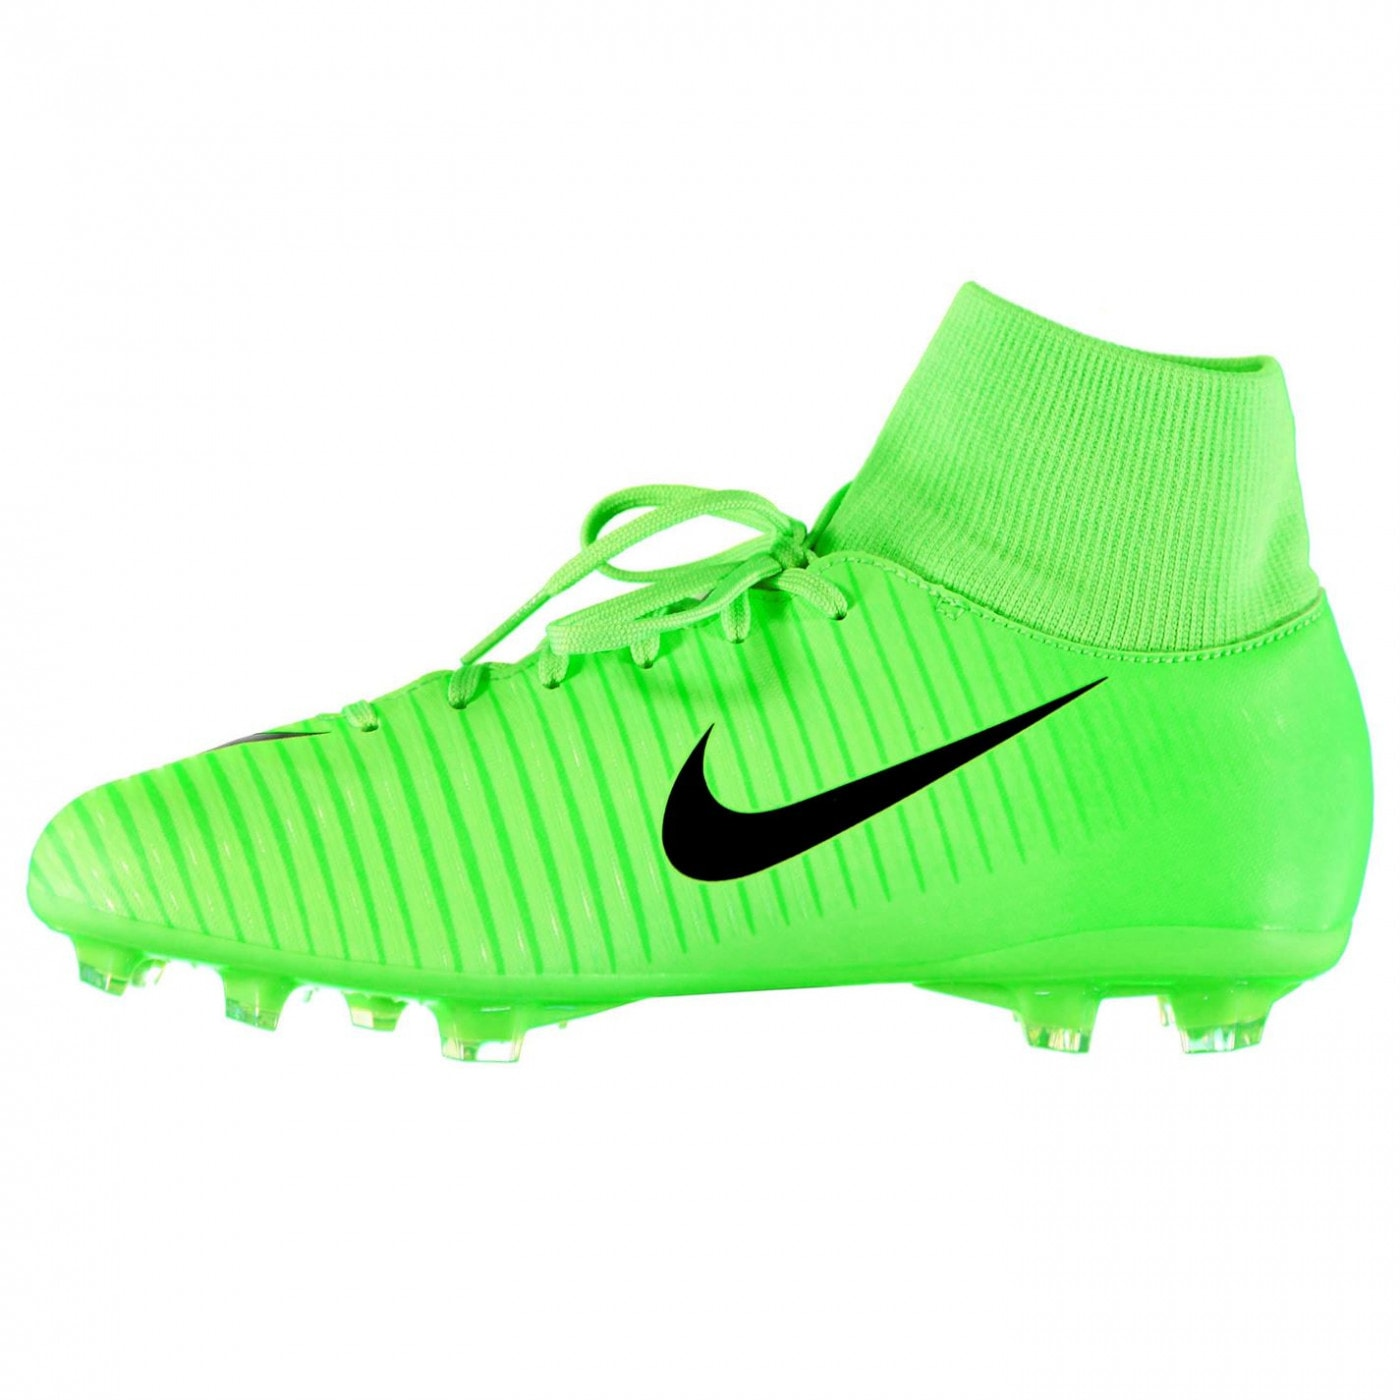 4a364d0ab5aa Nike Mercurial Victory Dynamic Fit FG Football Boots Junior - FACTCOOL